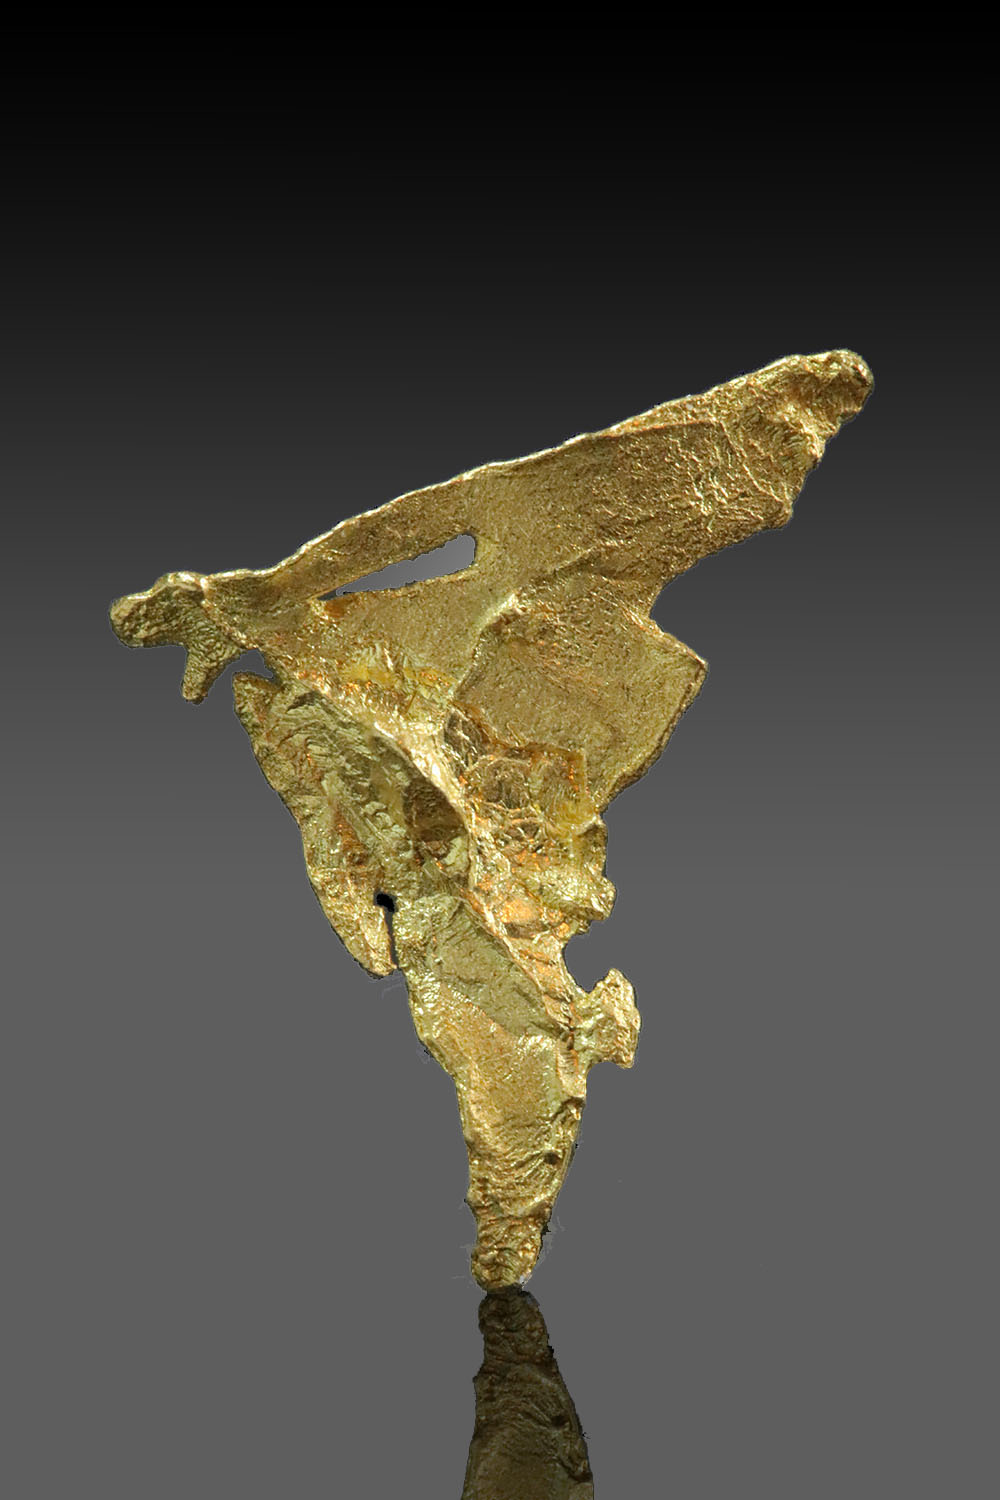 Intricate Triangular Gold Specimen from the Yukon